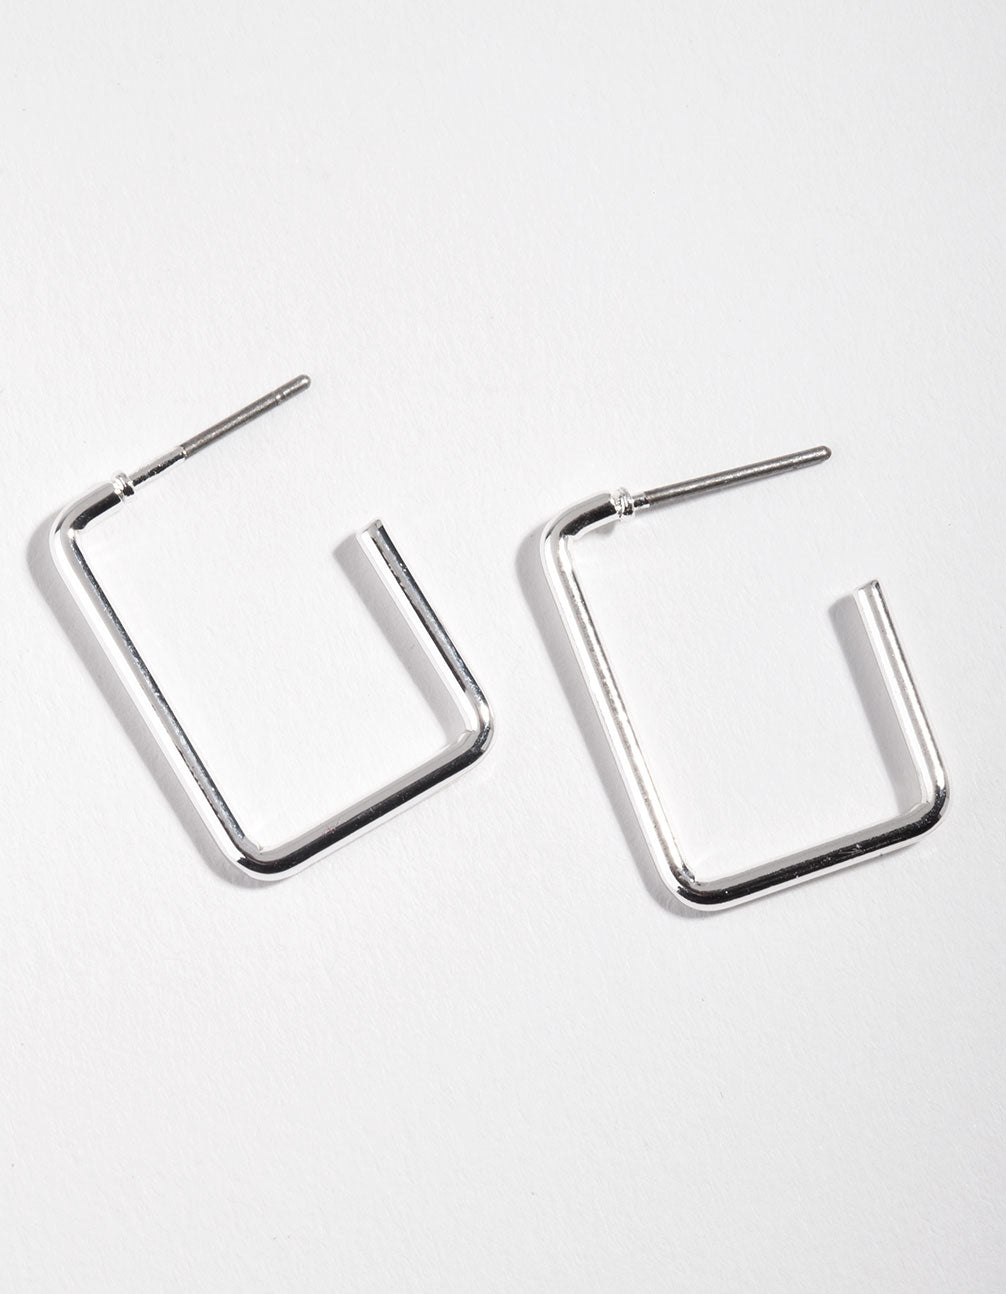 Silver Rectangle Hoop Earrings